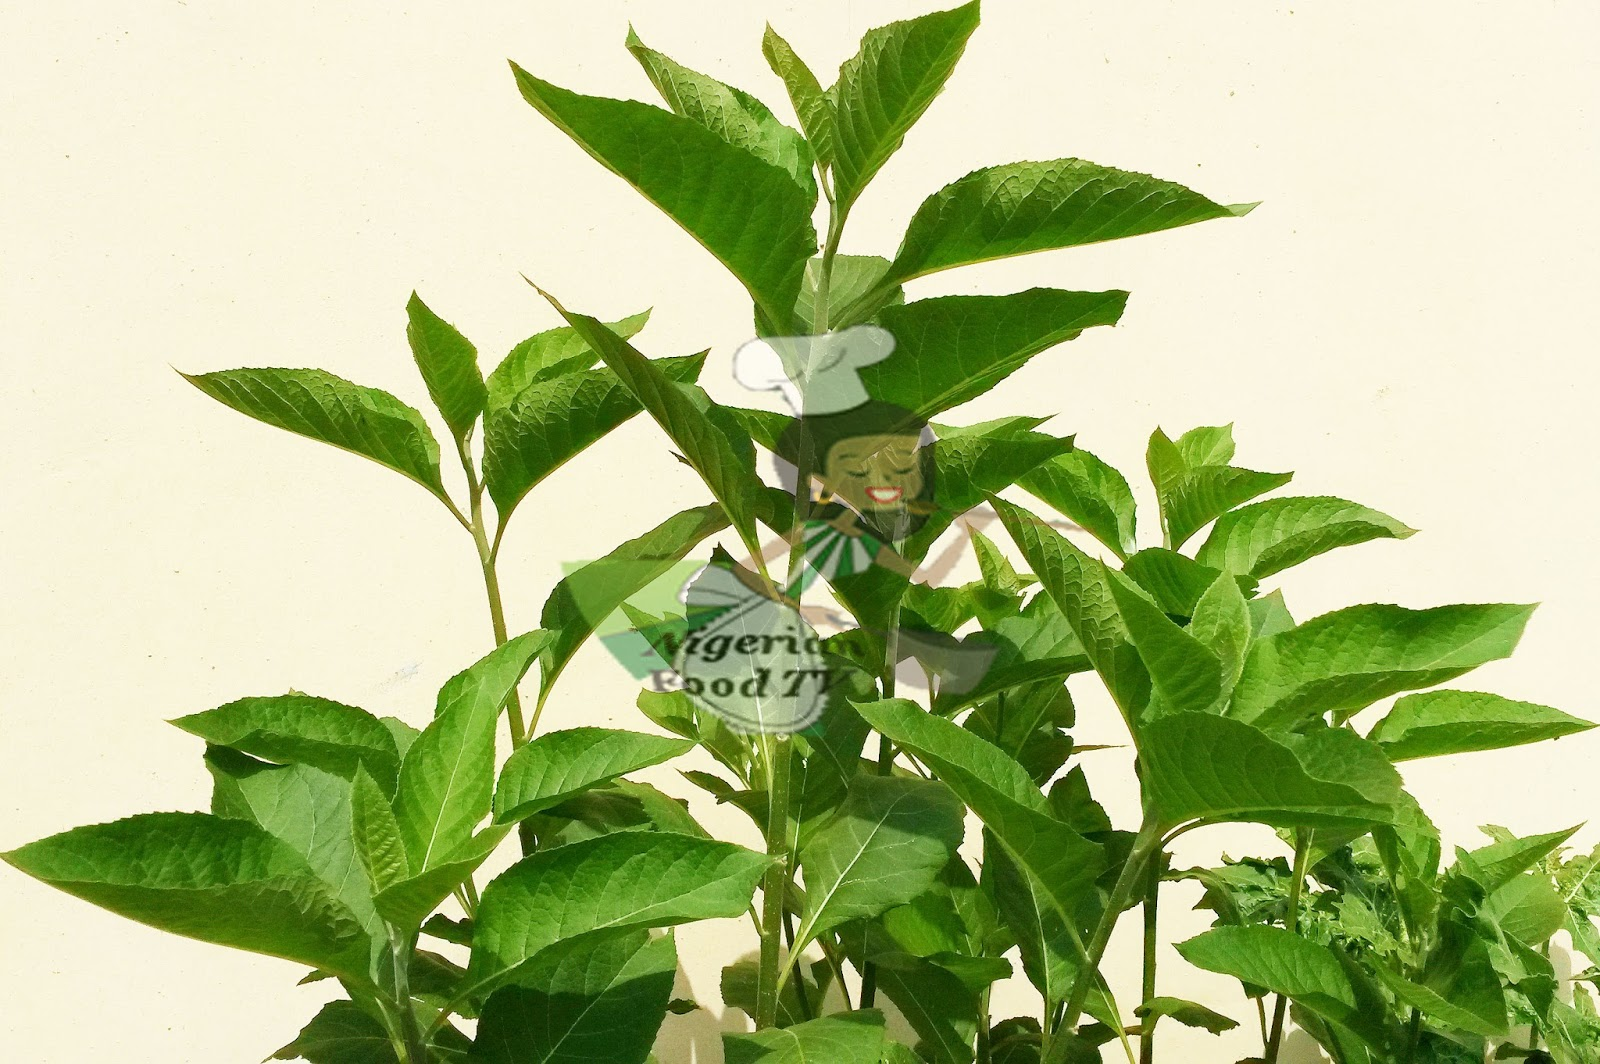 Health Benefits of Bitter leaf (Vernonia amygdalina